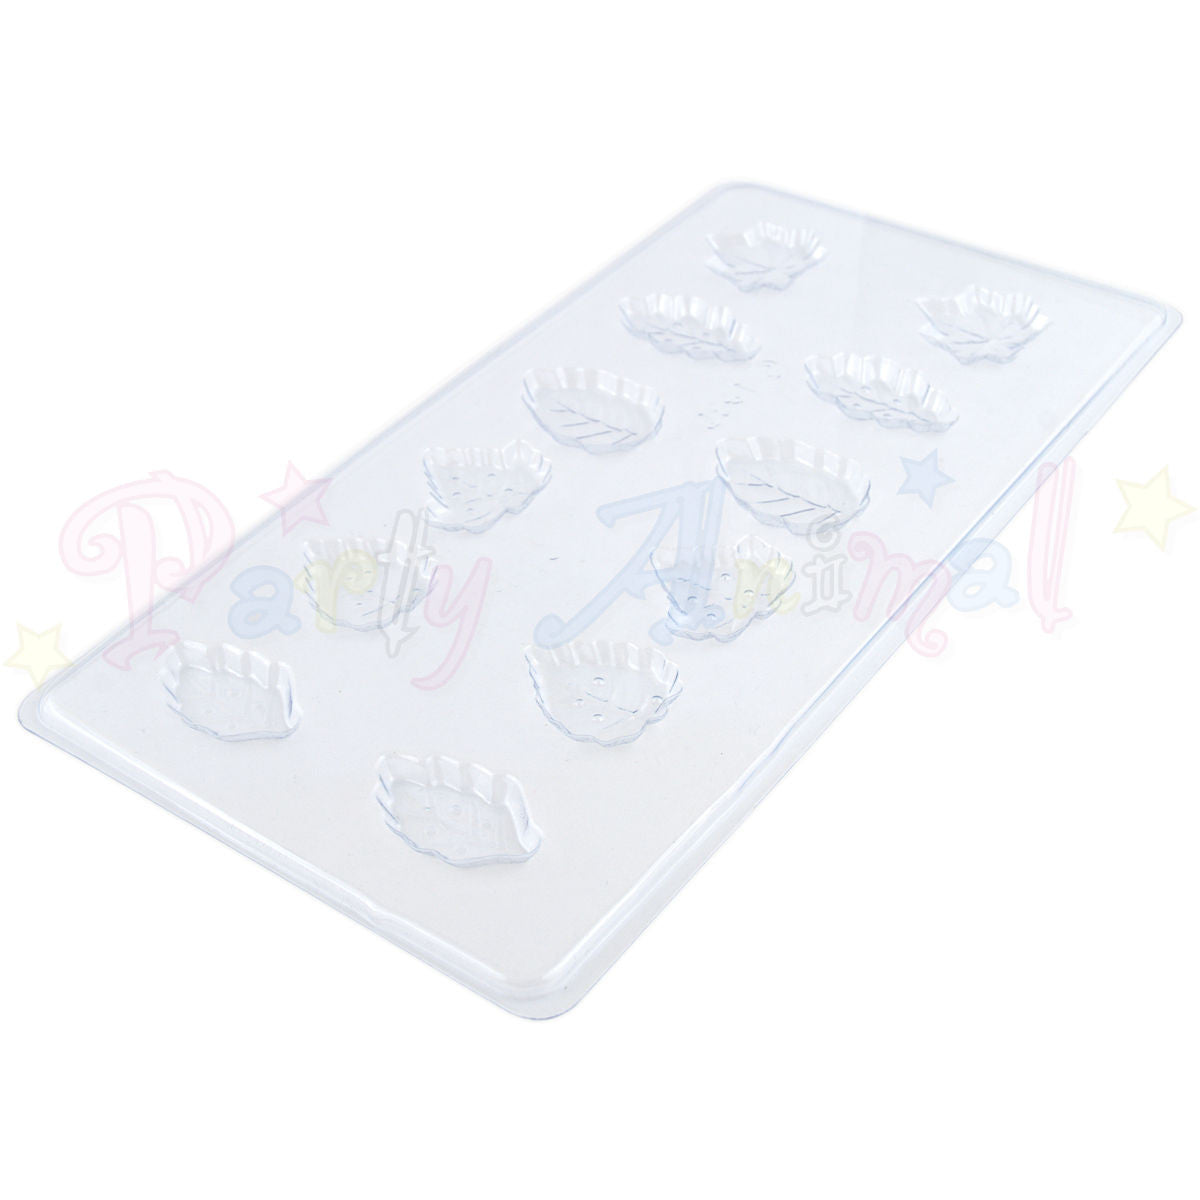 Chocolate Sweet Moulds - Leaf Moulds - 12 impressions